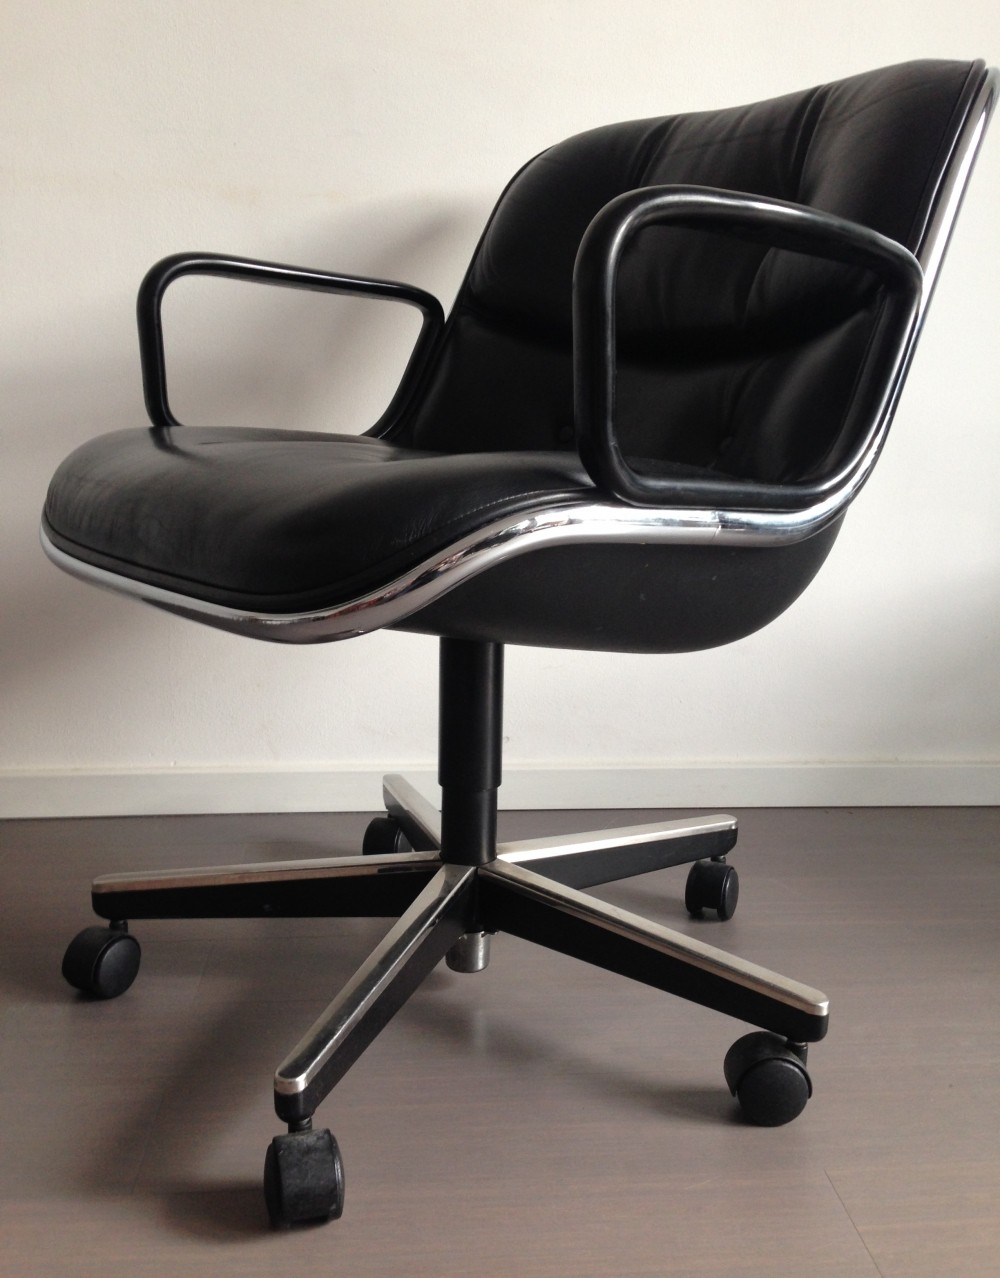 x office chair by charles pollock for knoll s   -  x office chair by charles pollock for knoll s